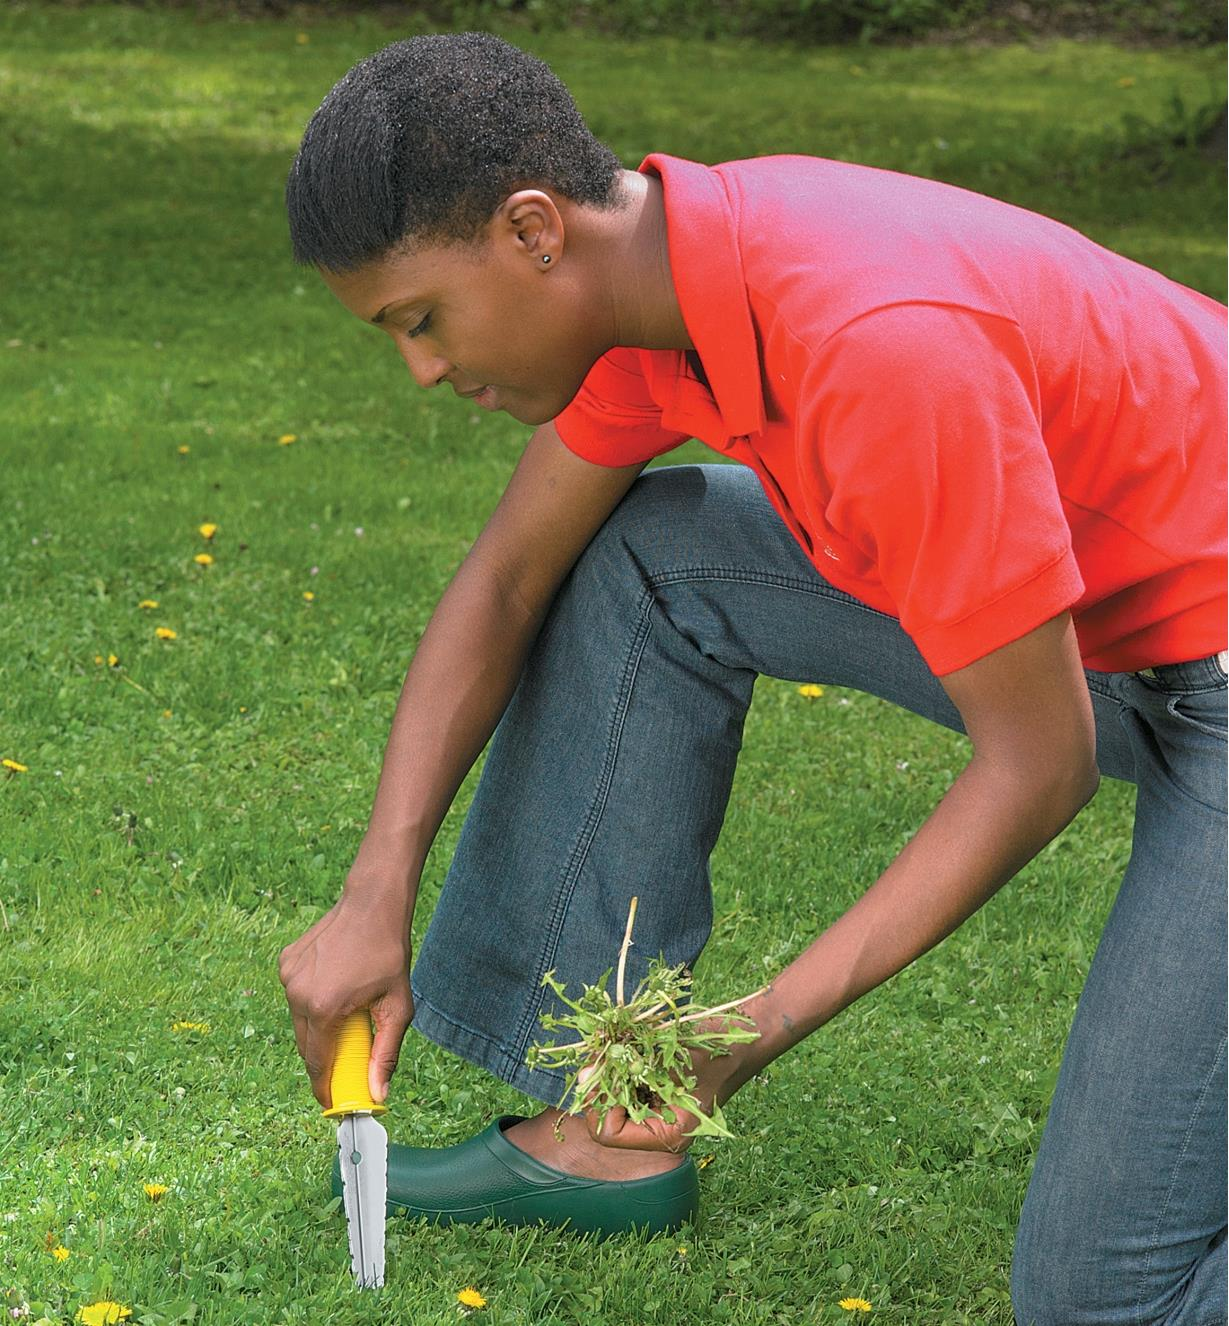 A woman uses the All-Purpose Lifetime Weeder to remove a weed from a lawn